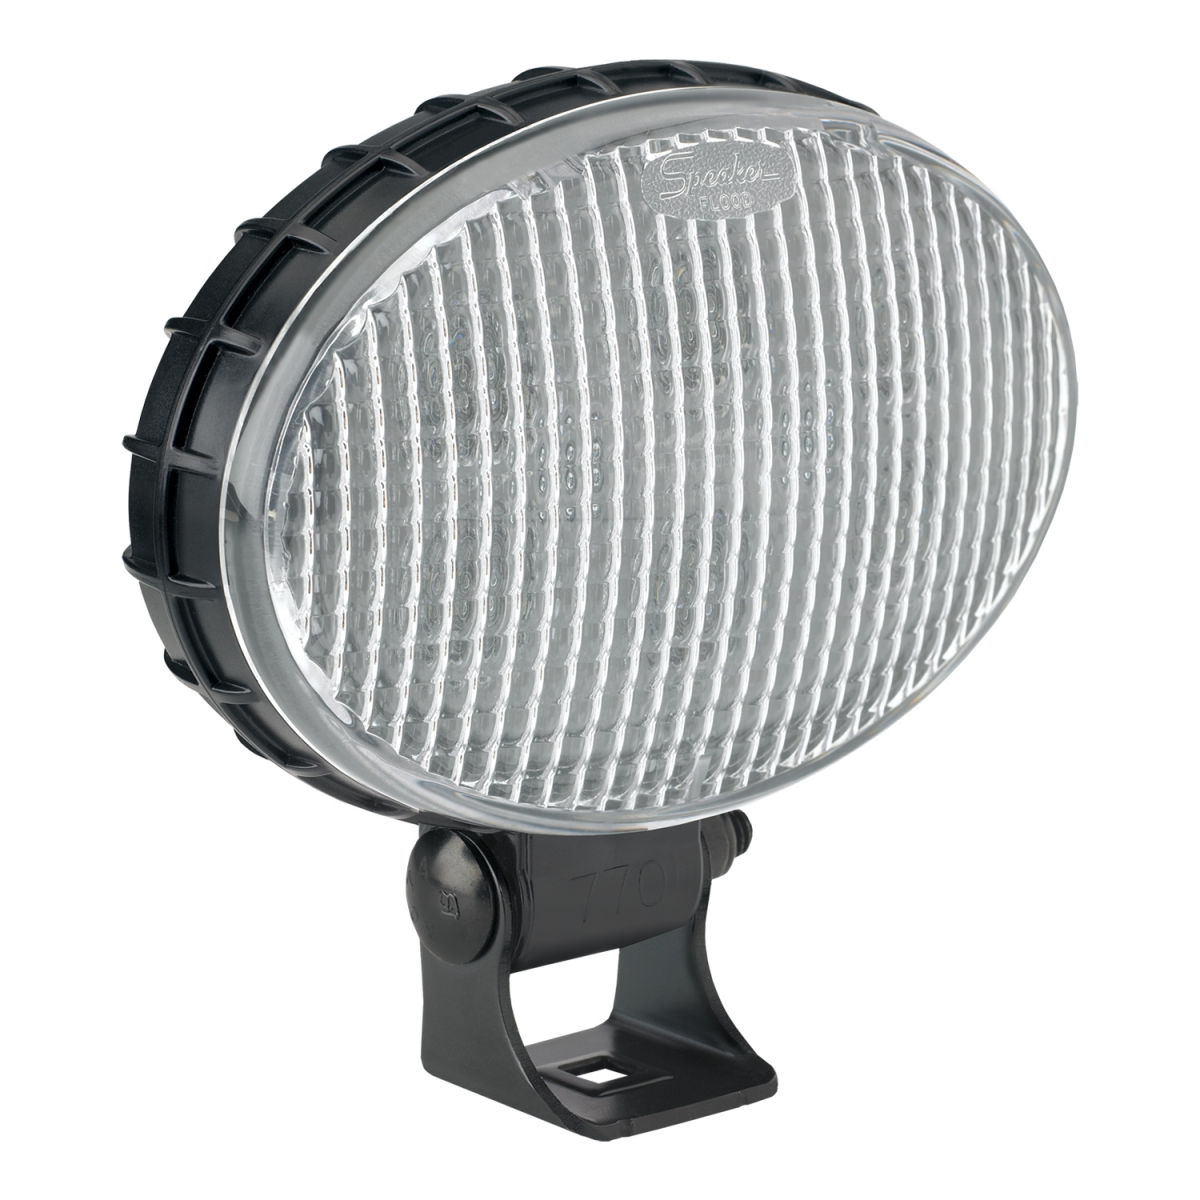 LED Work Light – Model 770 XD